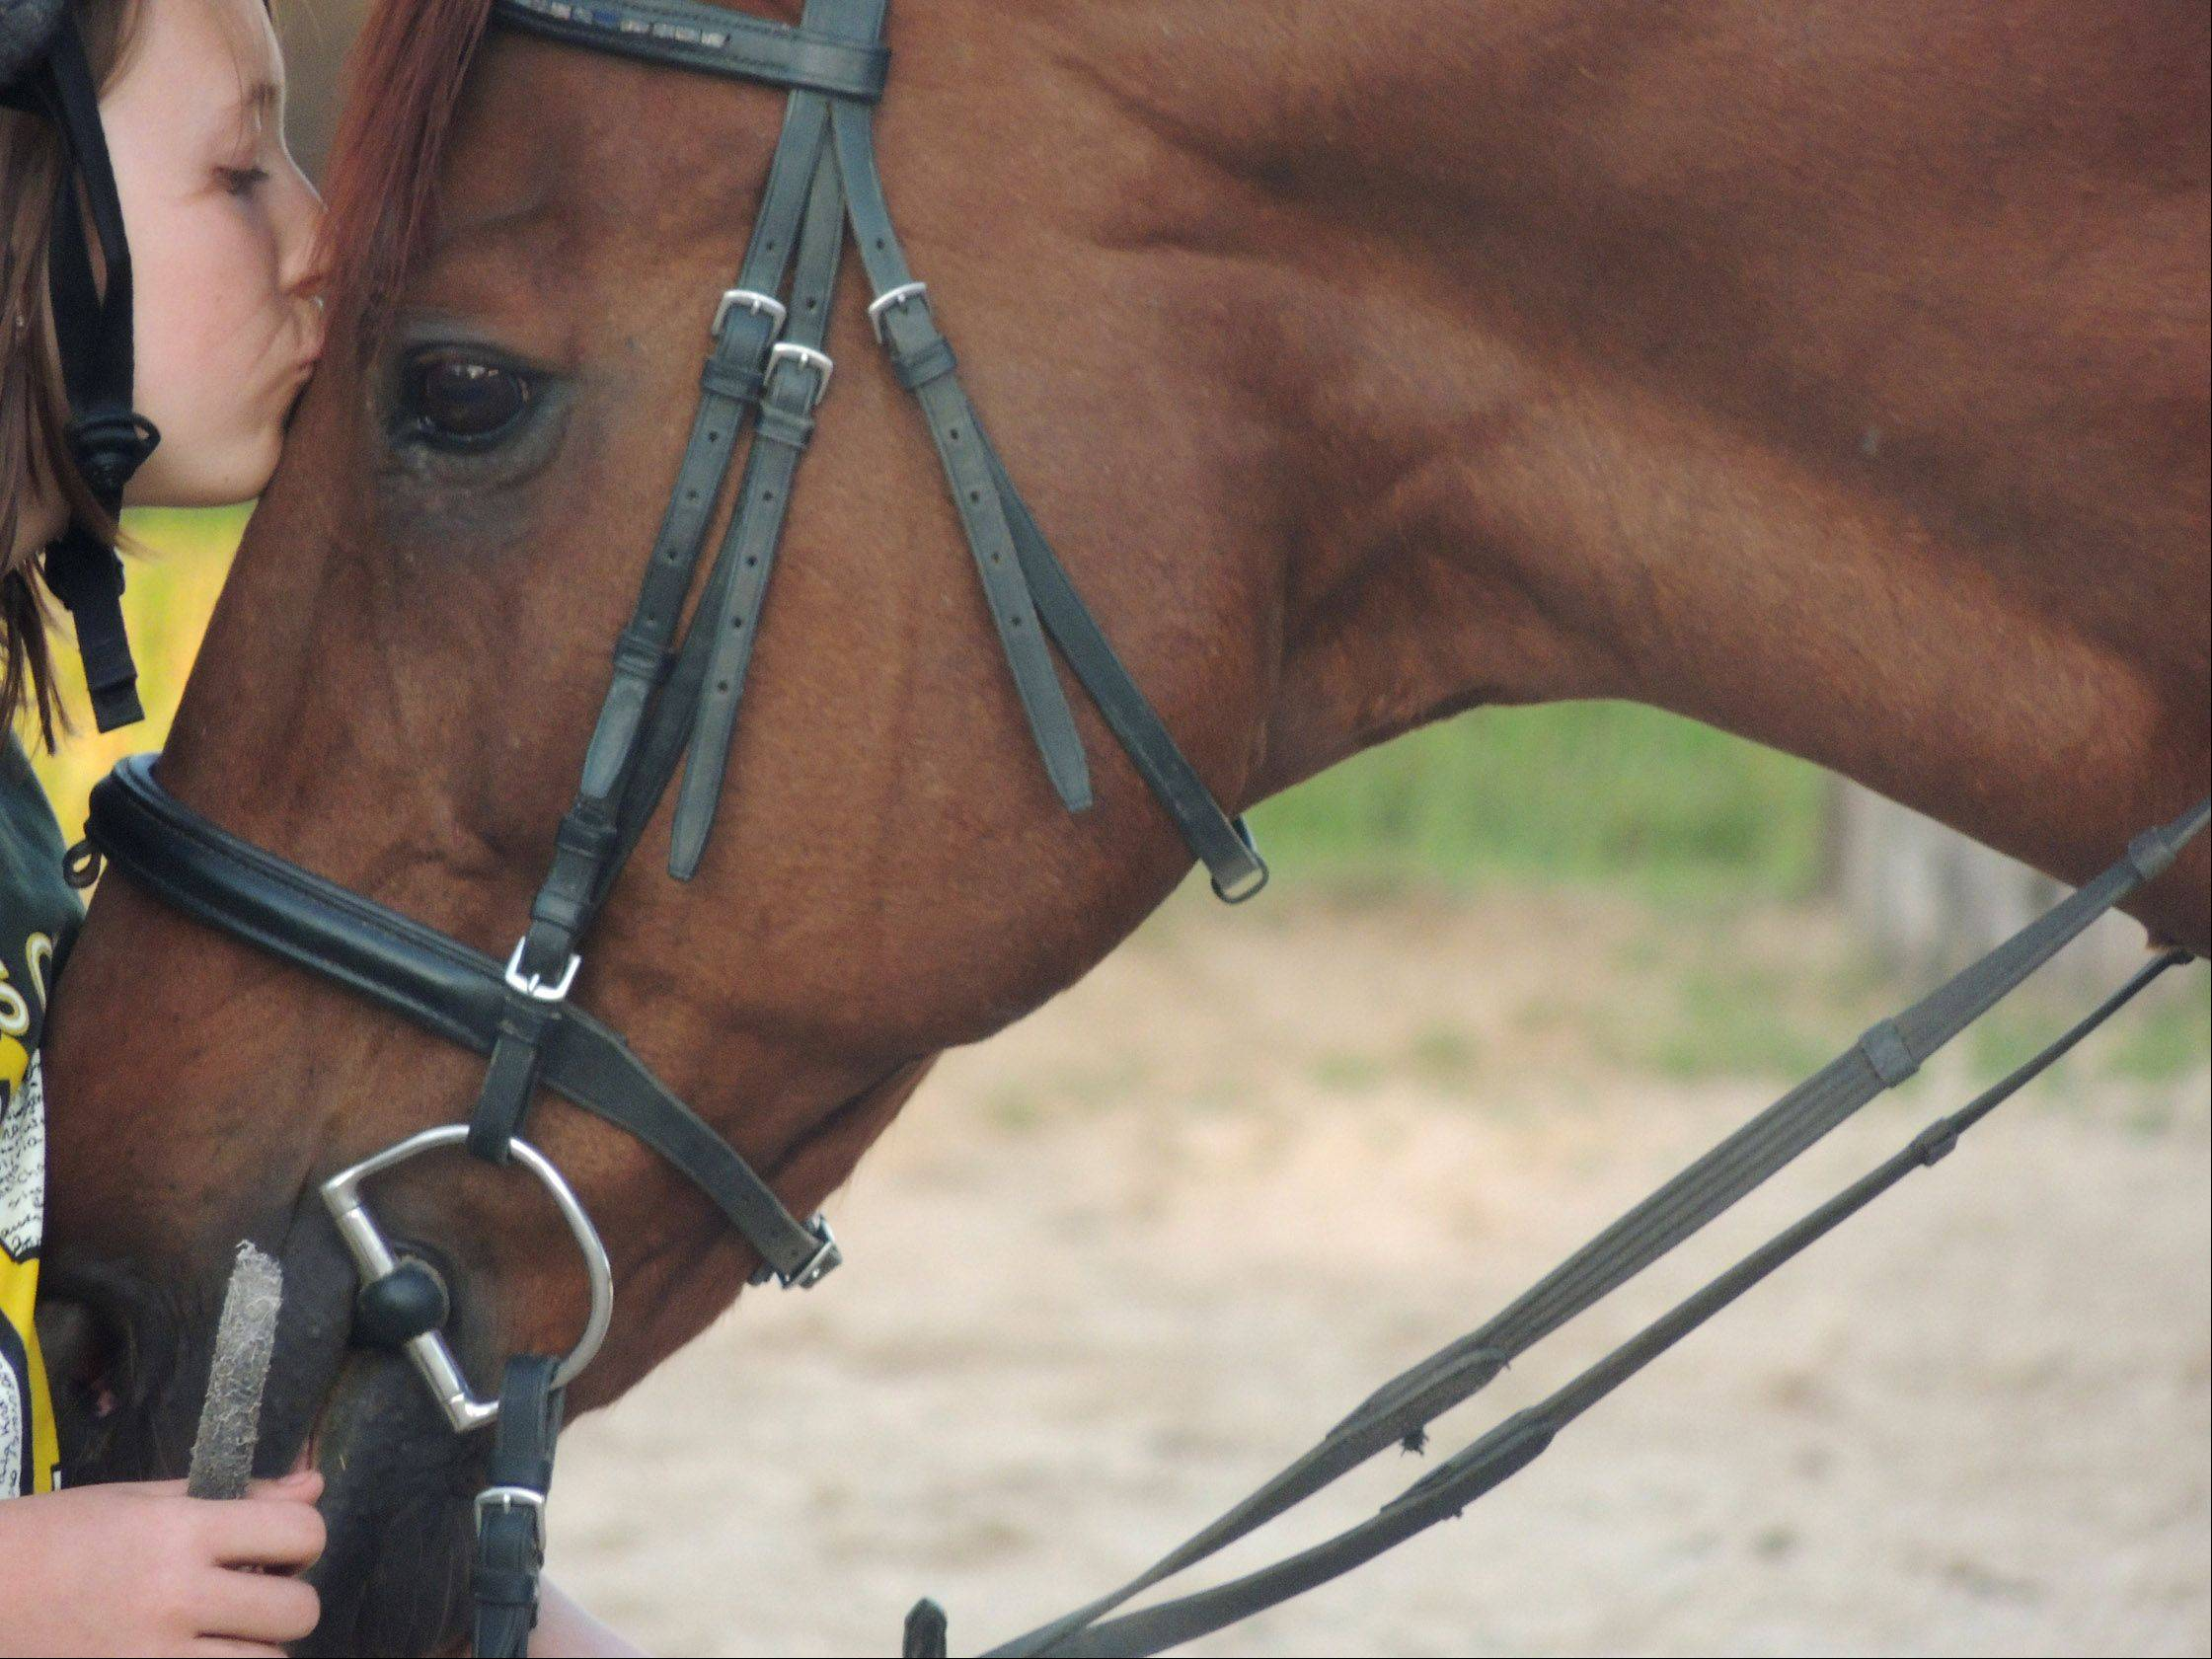 Claire Hess kisses her sisters horse, Acorn, after a riding lesson several months ago in Gilberts.